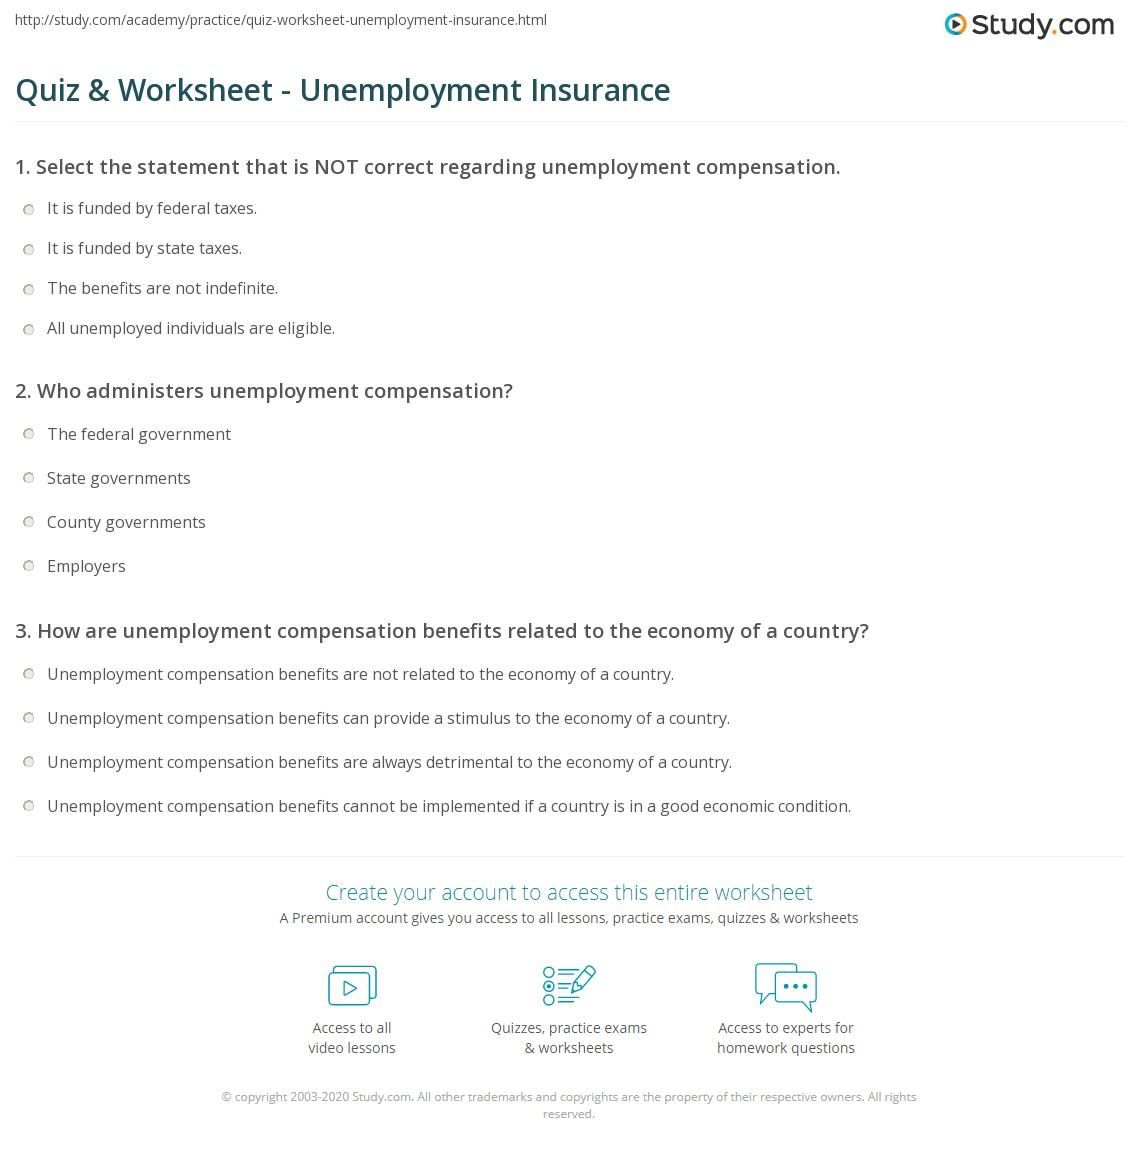 Quiz Worksheet Unemployment Insurance Study